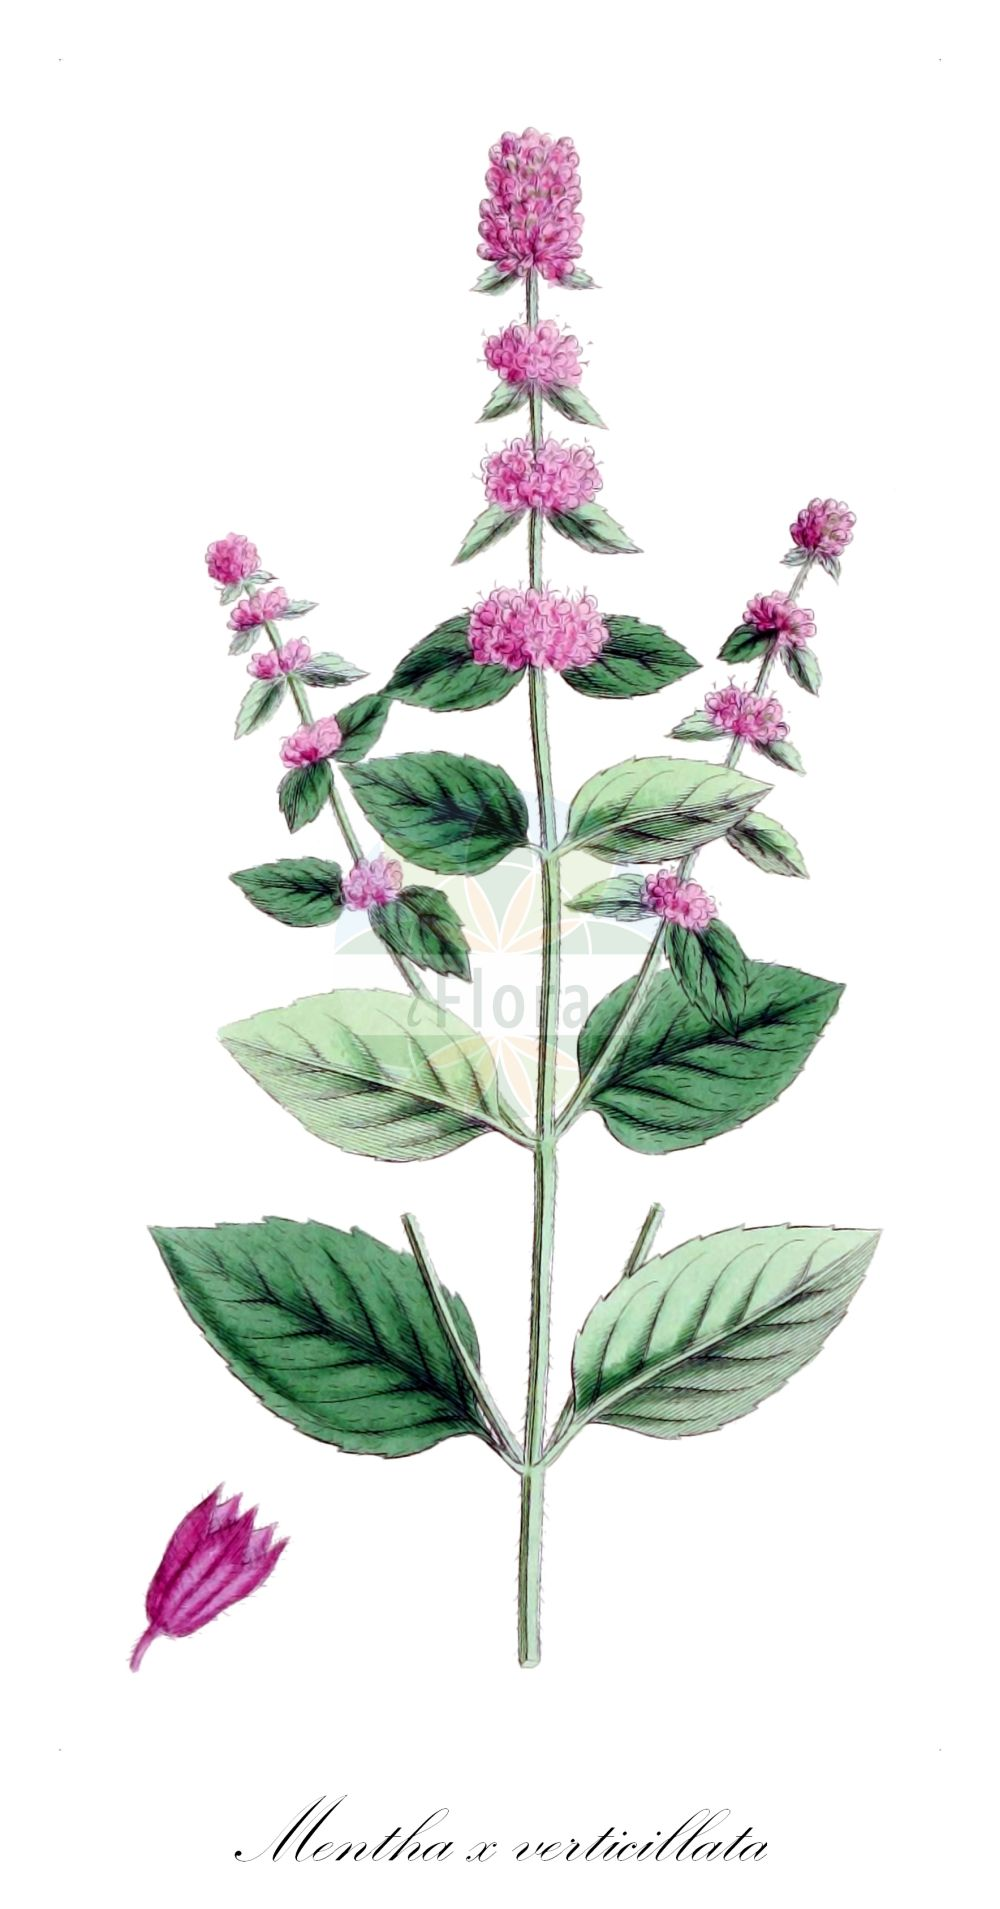 Historische Abbildung von Mentha x verticillata (Quirl-Minze - Whorled Mint). Das Bild zeigt Blatt, Bluete, Frucht und Same. ---- Historical Drawing of Mentha x verticillata (Quirl-Minze - Whorled Mint).The image is showing leaf, flower, fruit and seed.(Mentha x verticillata,Quirl-Minze,Whorled Mint,Mentha,Minze,Mint,Lamiaceae,Lippenbluetengewaechse;Lippenbluetler,Nettle family,Blatt,Bluete,Frucht,Same,leaf,flower,fruit,seed,Sowerby (1790-1813))